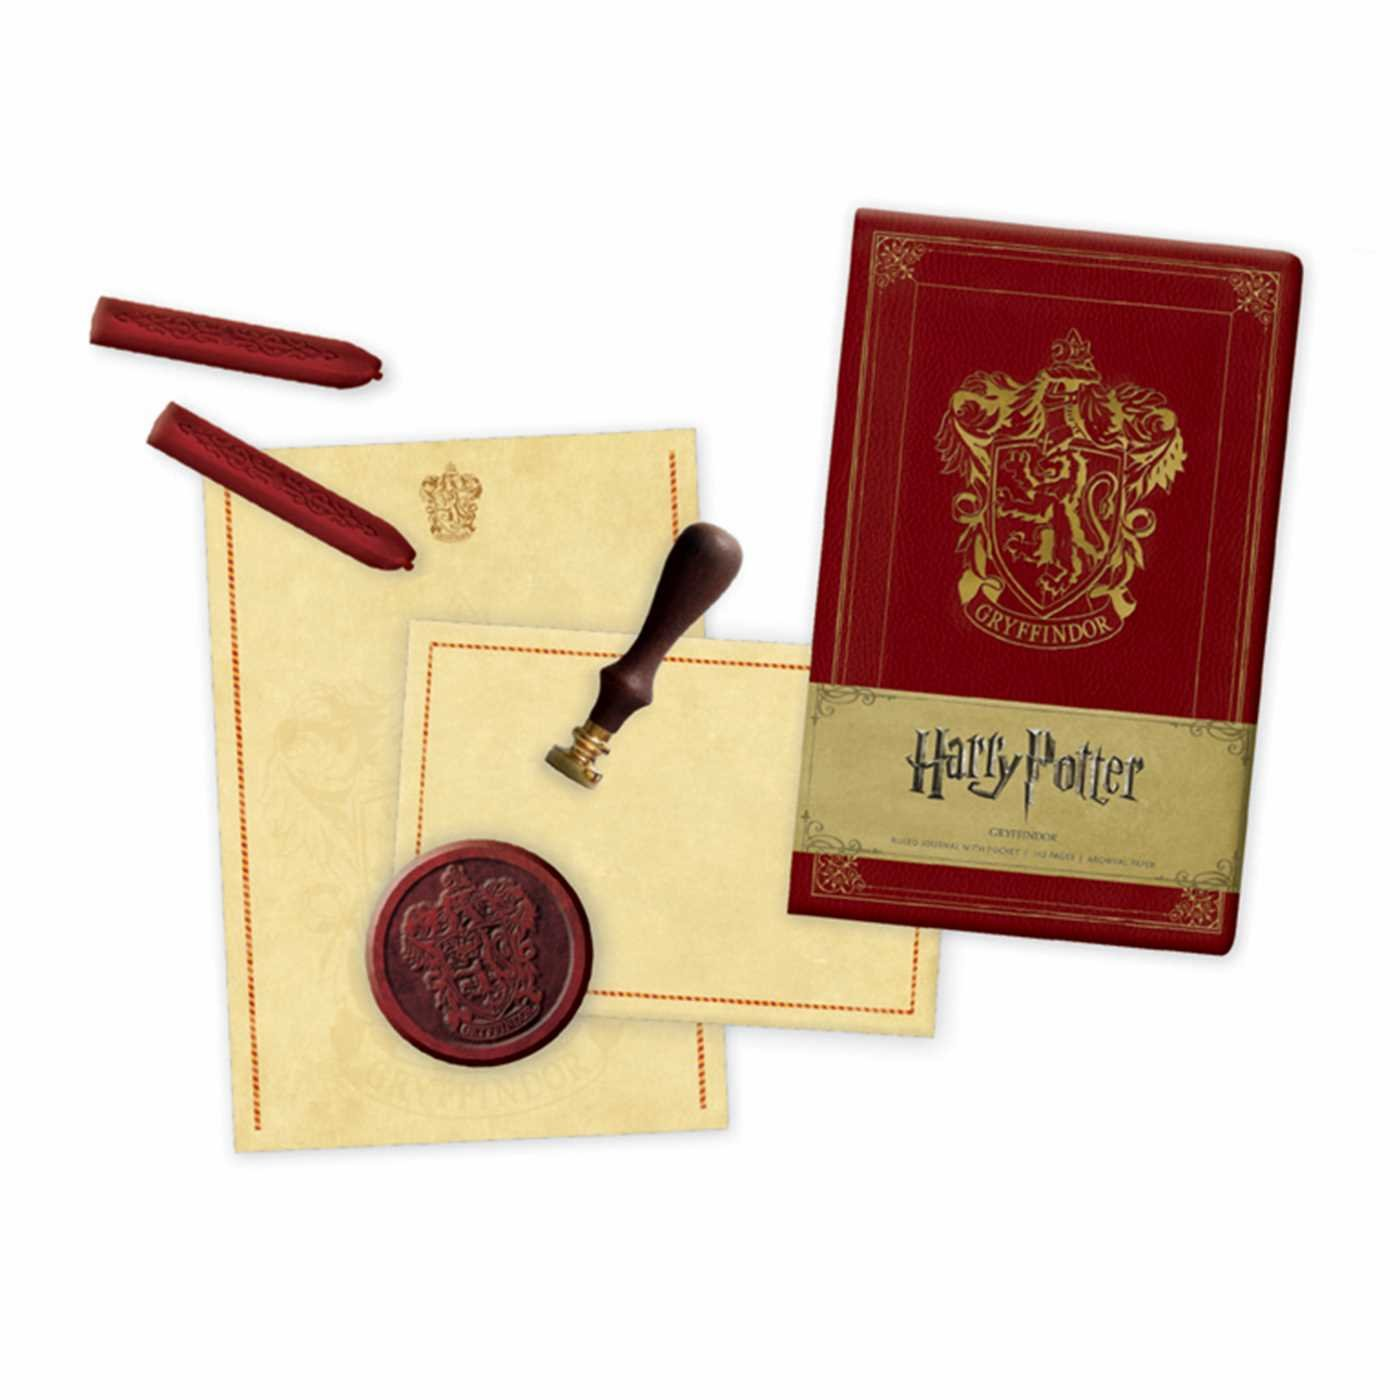 Harry Potter: Gryffindor Deluxe Stationery Set (Insights ...